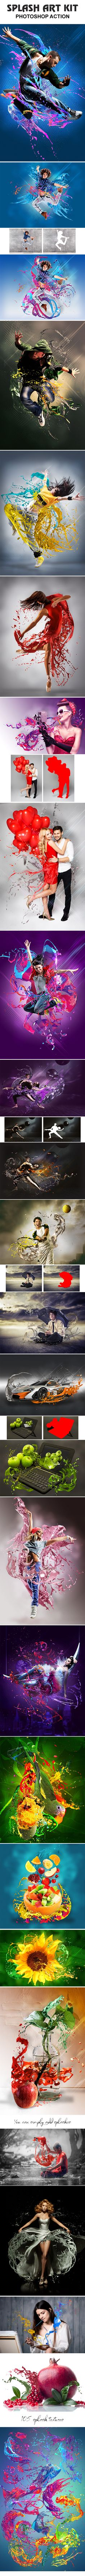 Splash Art Kit #Photoshop Action - Photo Effects Actions Download here:  https://graphicriver.net/item/splash-art-kit-photoshop-action/19409983?ref=alena994